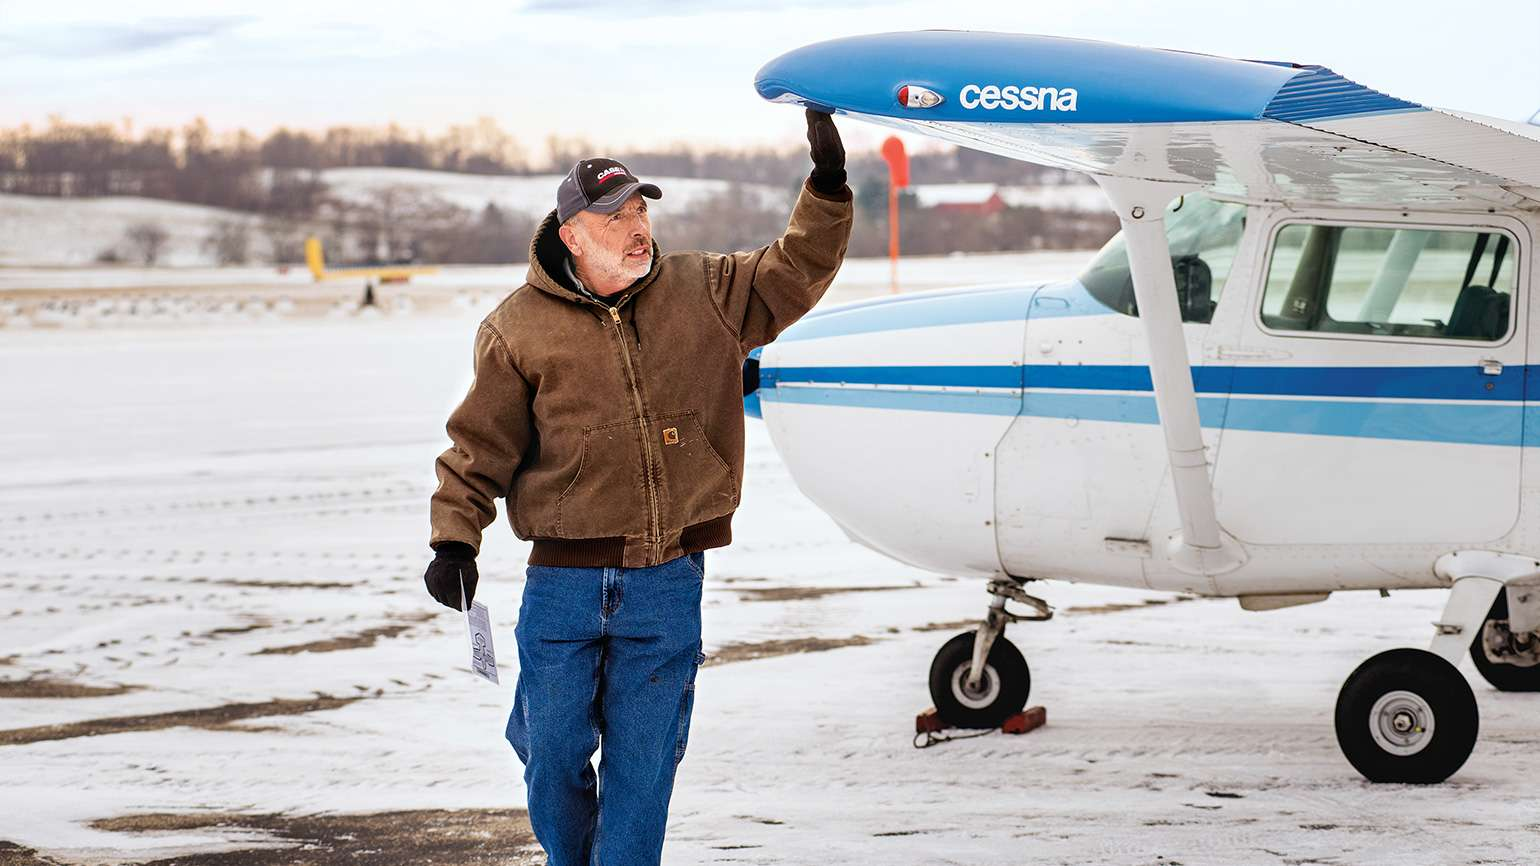 Joe conducts a preflight check of a Cessna 172.